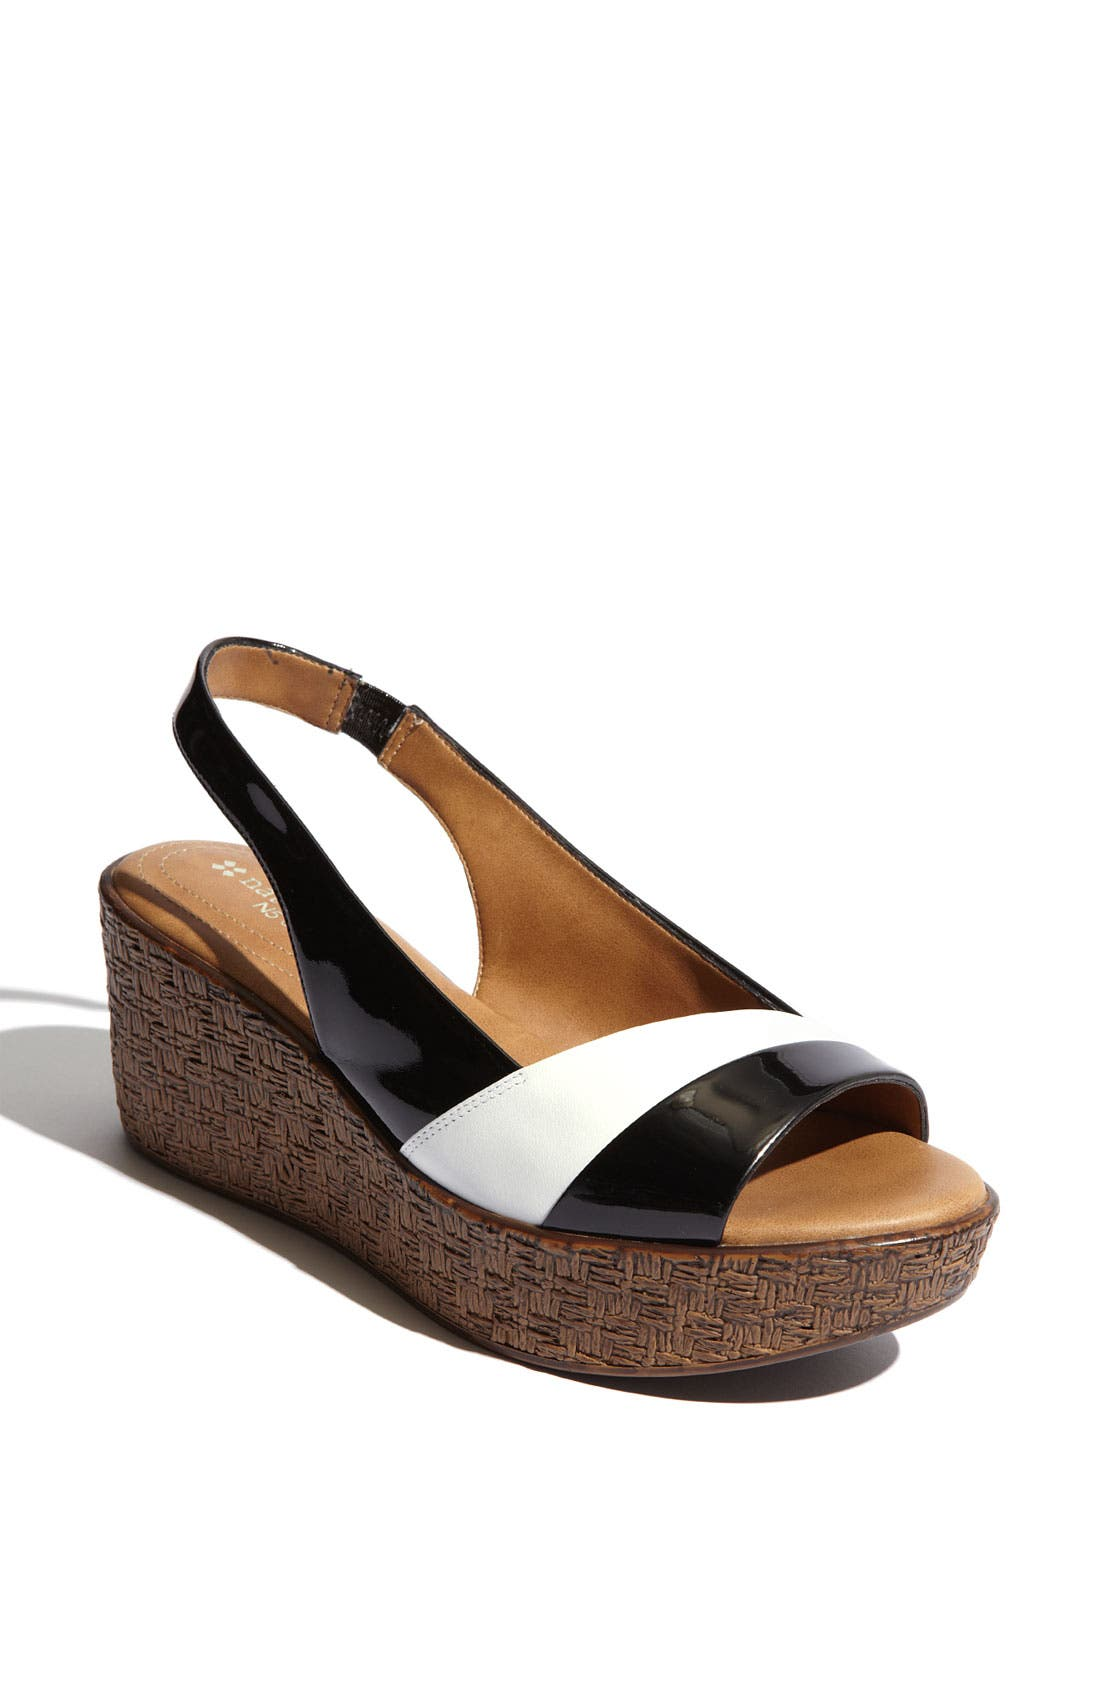 Alternate Image 1 Selected - Naturalizer 'Ladell' Sandal